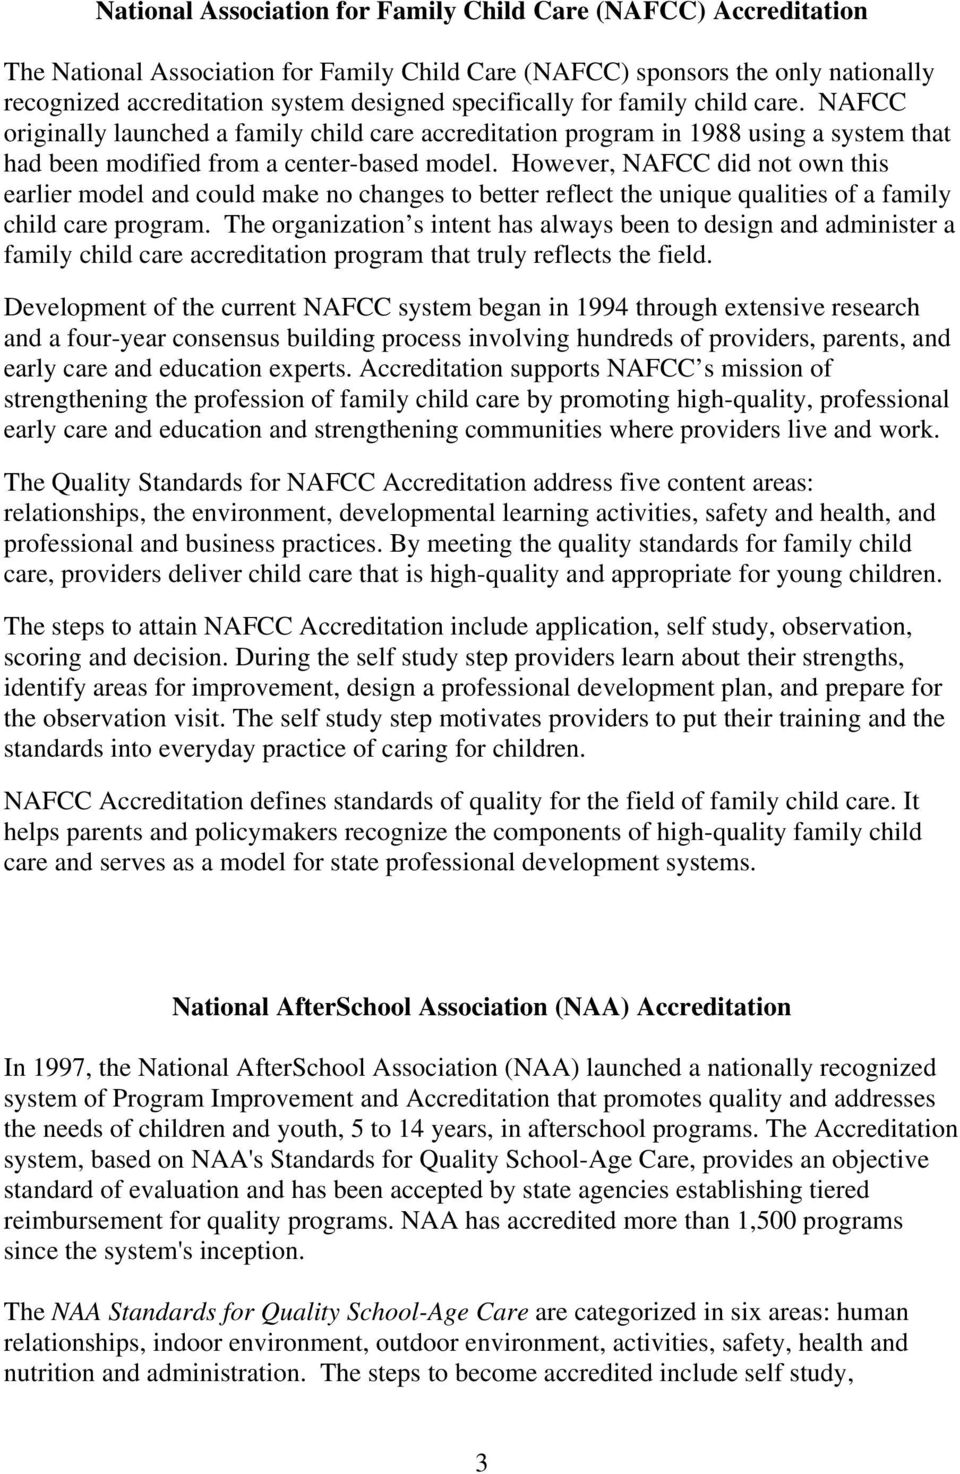 However, NAFCC did not own this earlier model and could make no changes to better reflect the unique qualities of a family child care program.